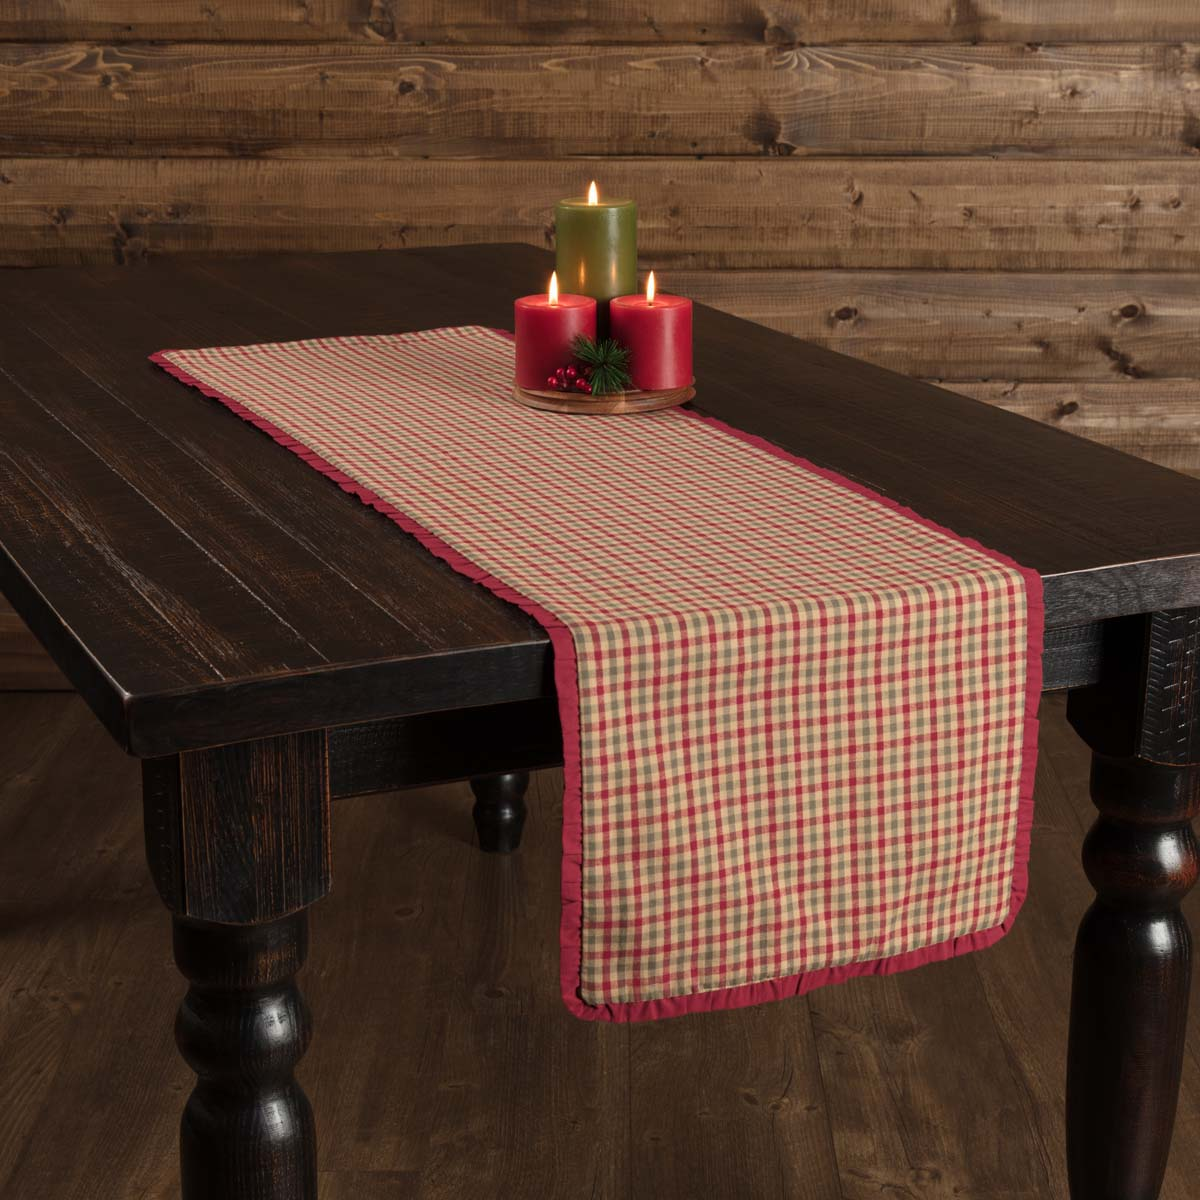 Jonathan Plaid Ruffled Runner 13x48 - Woodrol